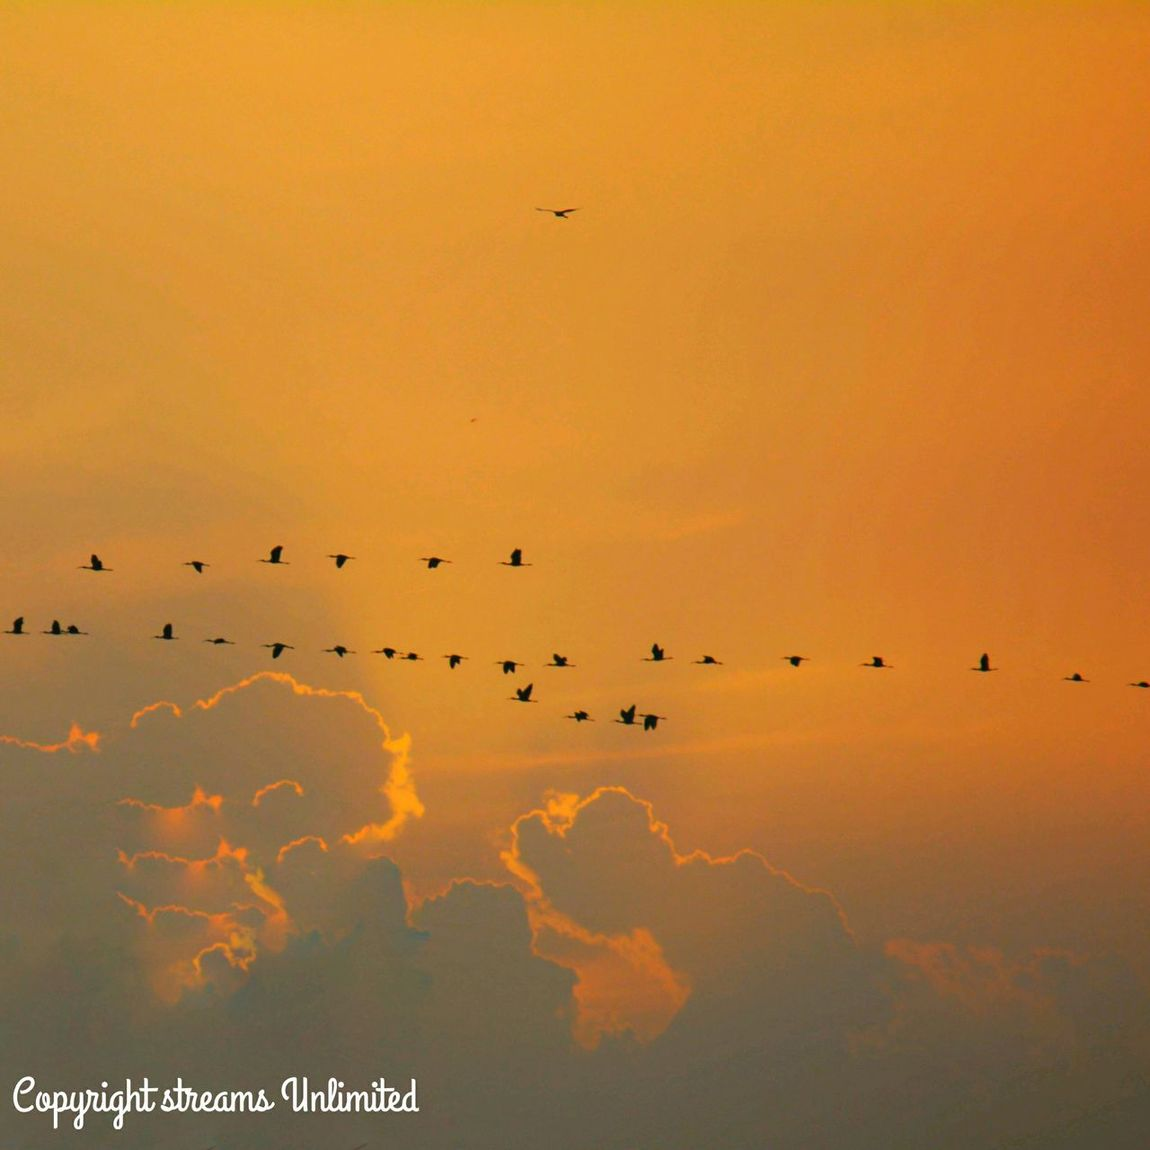 Morning Dawn! Birds are flying for food, showering of golden rays on earth, magnificent cool breeze imparting strength to enliven new life! Dawn Of A New Day Morning Sky Sky And Clouds Birds At Sky Travel Photography Enjoying Life Hello World Living With Nature Good Morning✌♥ Morning Glow